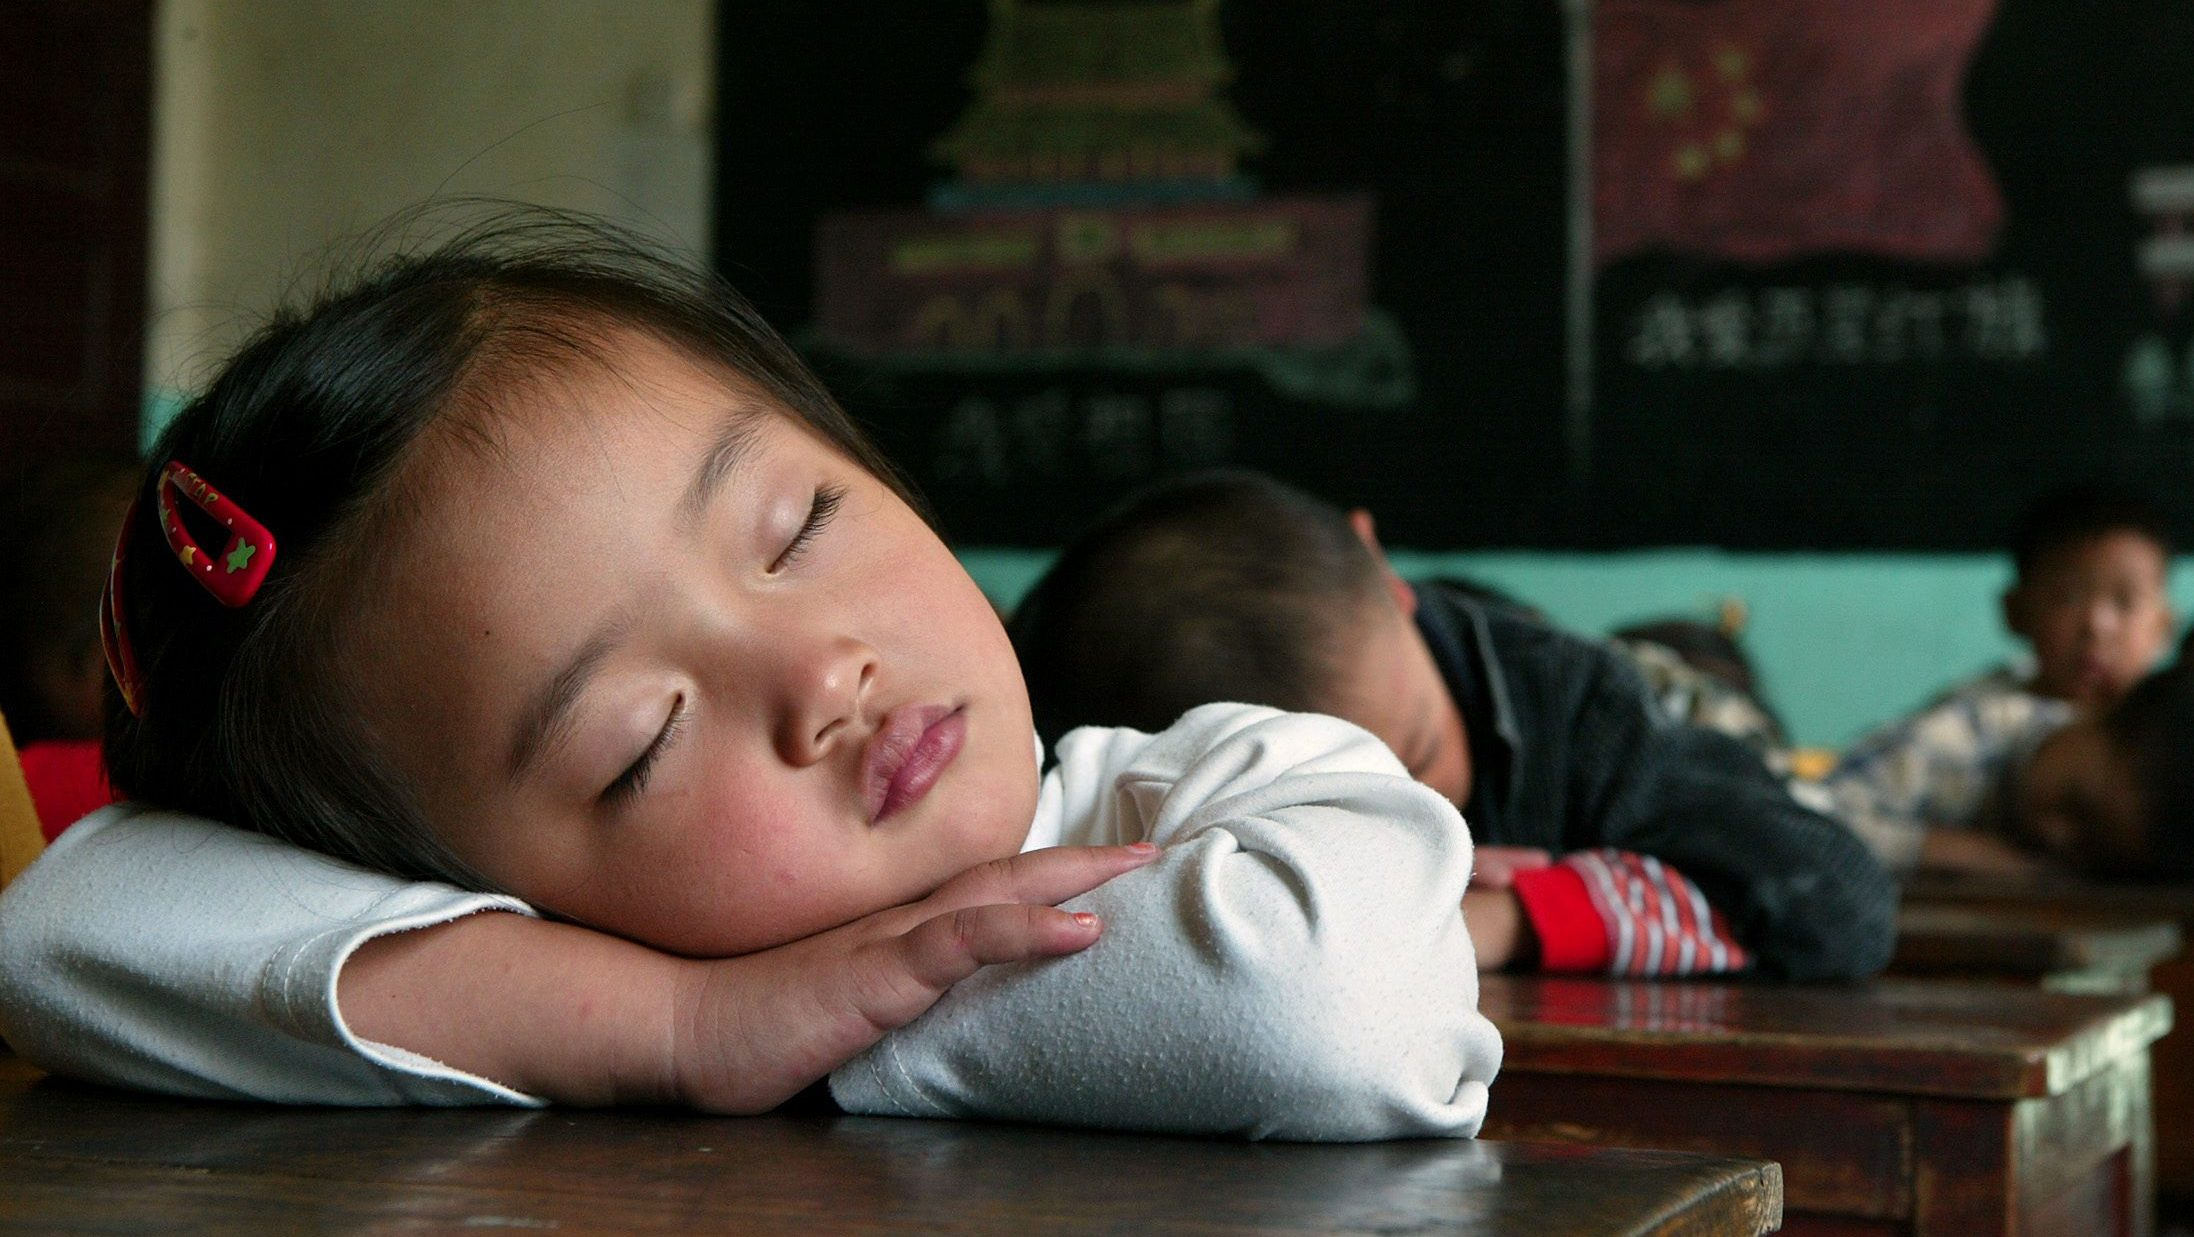 Sleeping with parents helps the child avoid obesity